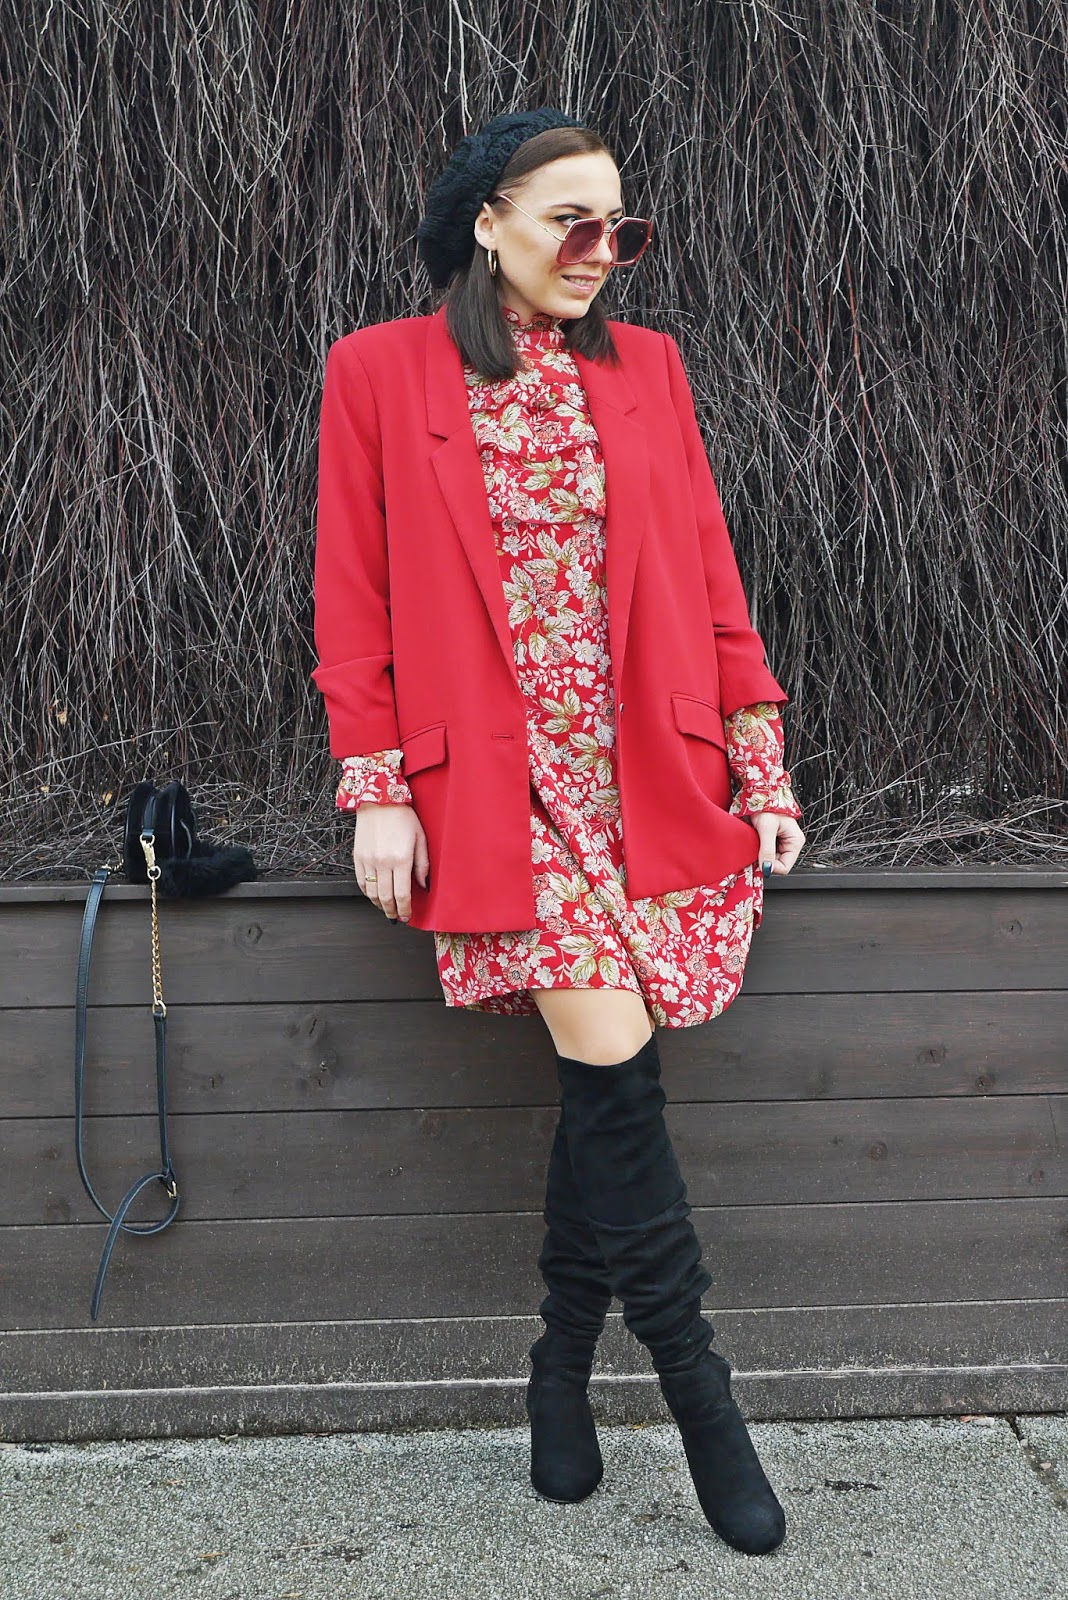 floral dress bonprix red jacket black high knee boots renee karyn fashion blogger